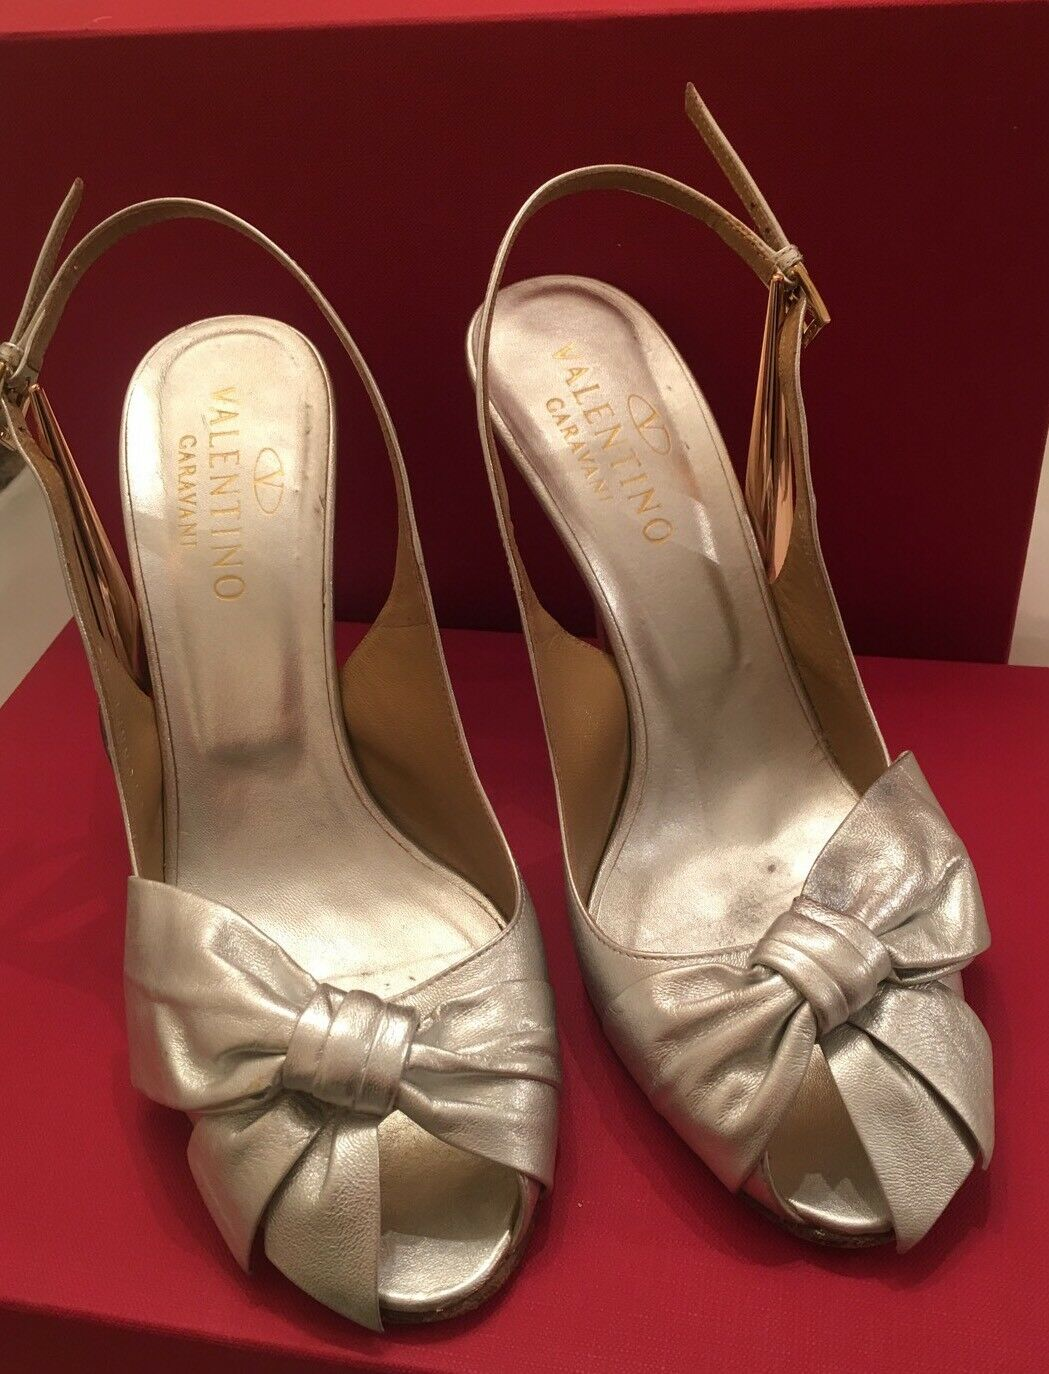 Valentino Garavani Silver With Bow Party shoes Sexy IT 40 US 9